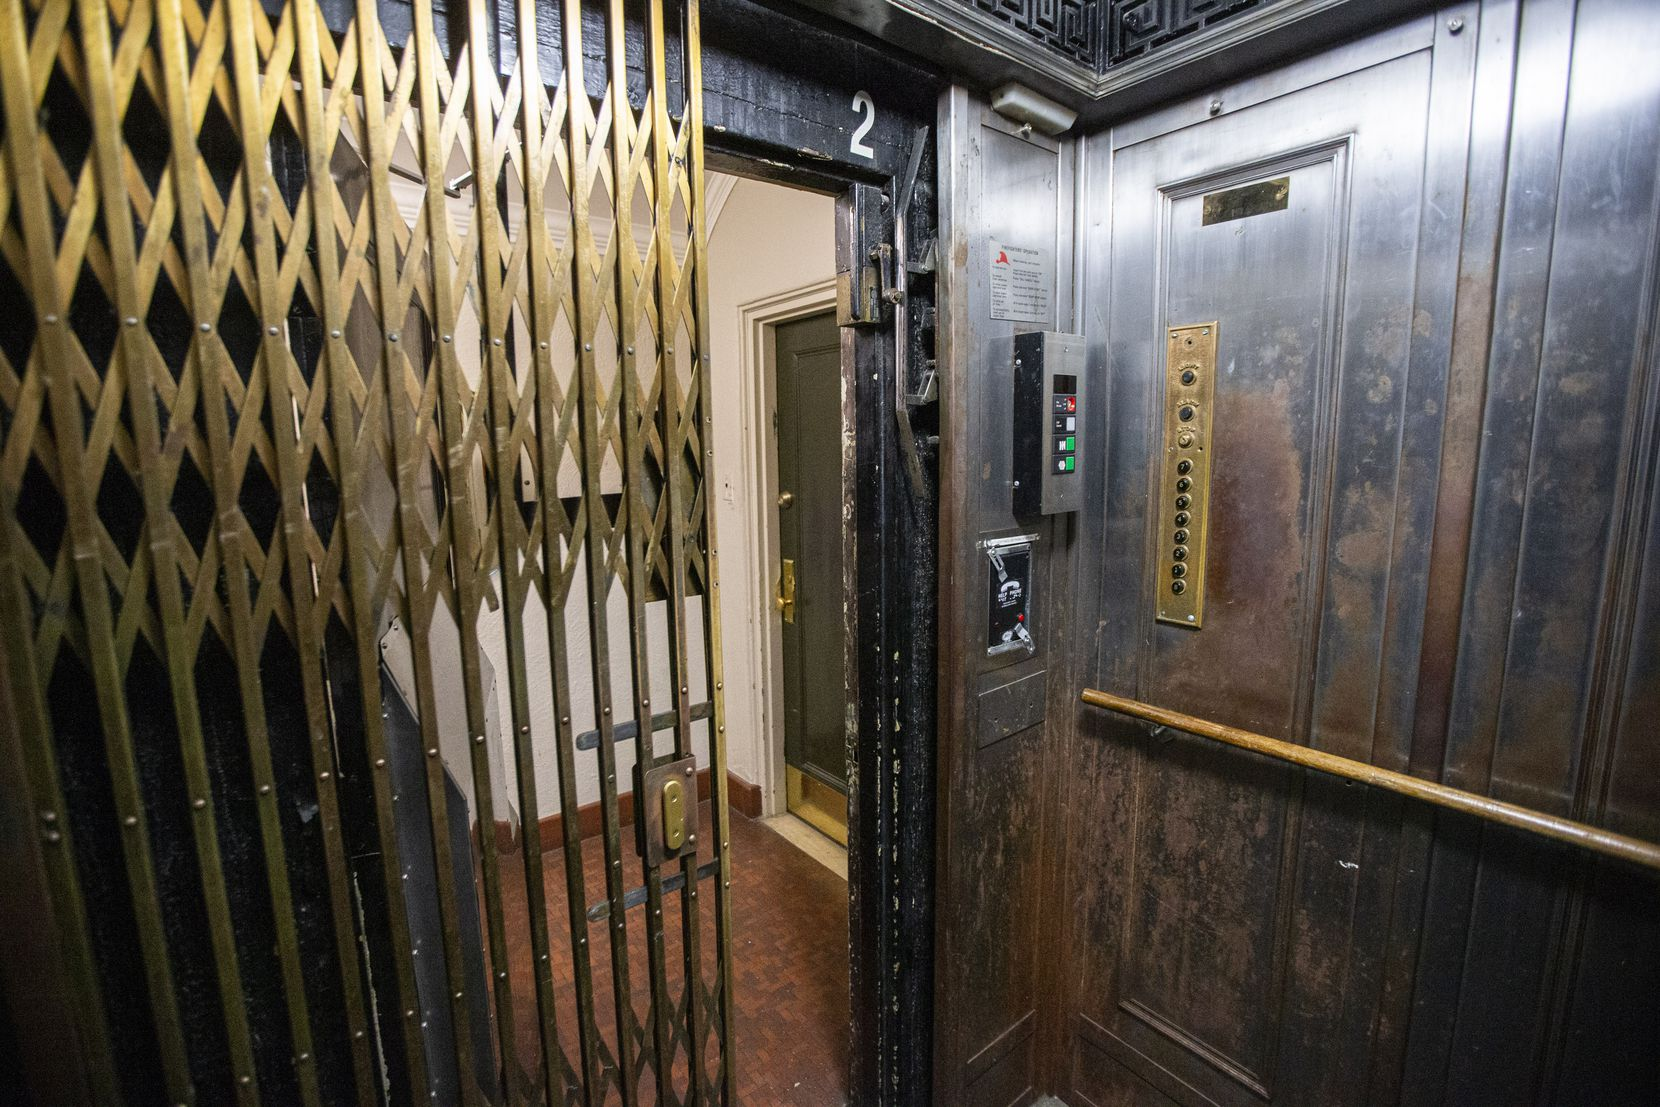 One of four elevators at the historic Maple Terrace Apartments, a 7-story building in Dallas that has had unending problems with elevators, first installed in 1936.